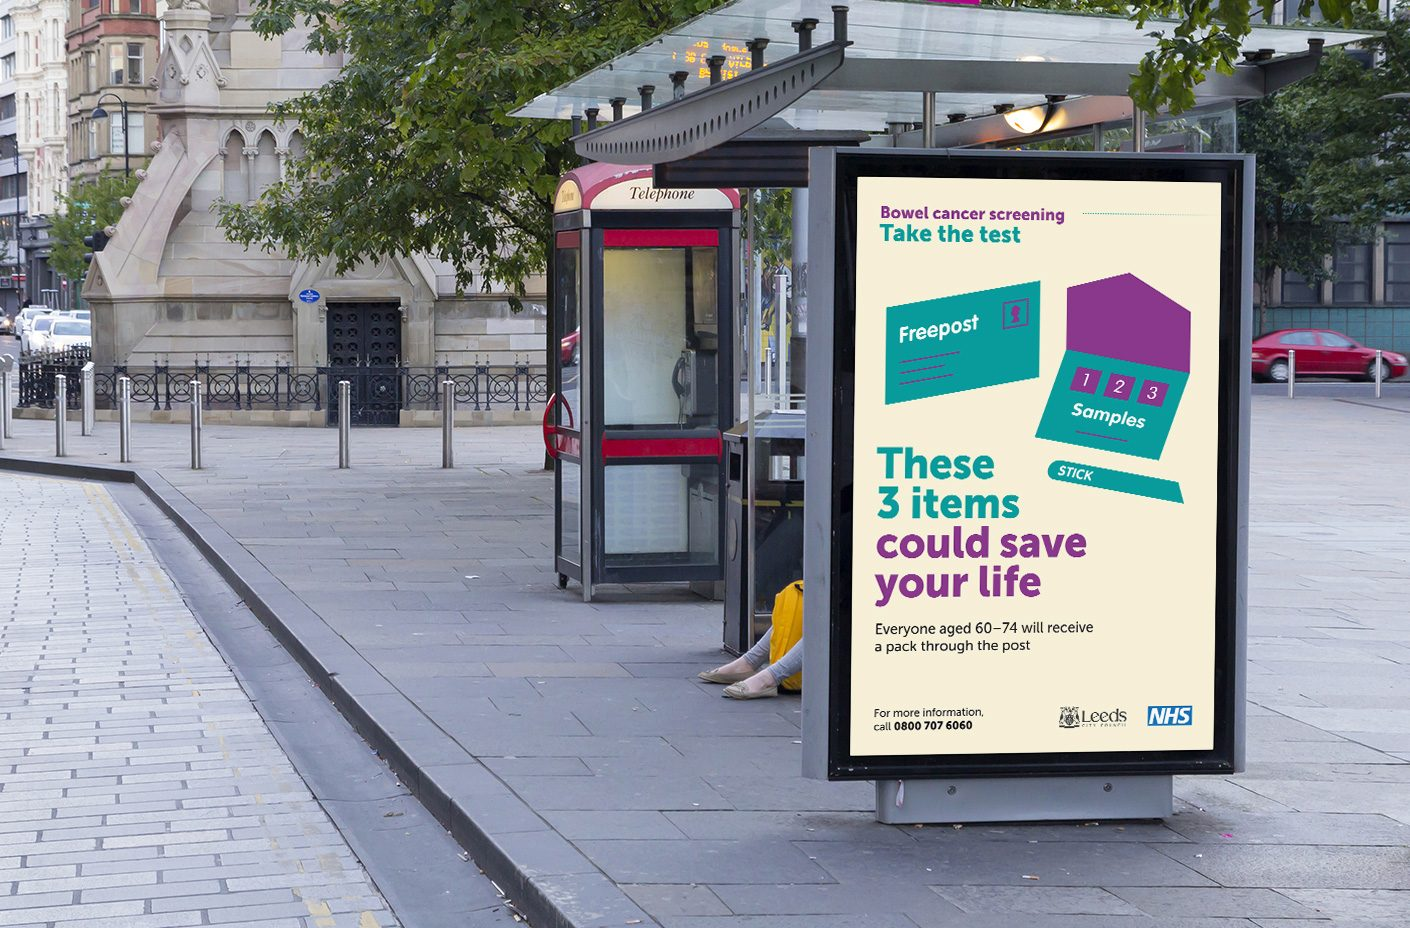 NHS Leeds Bowel Cancer Screening campaign billboard